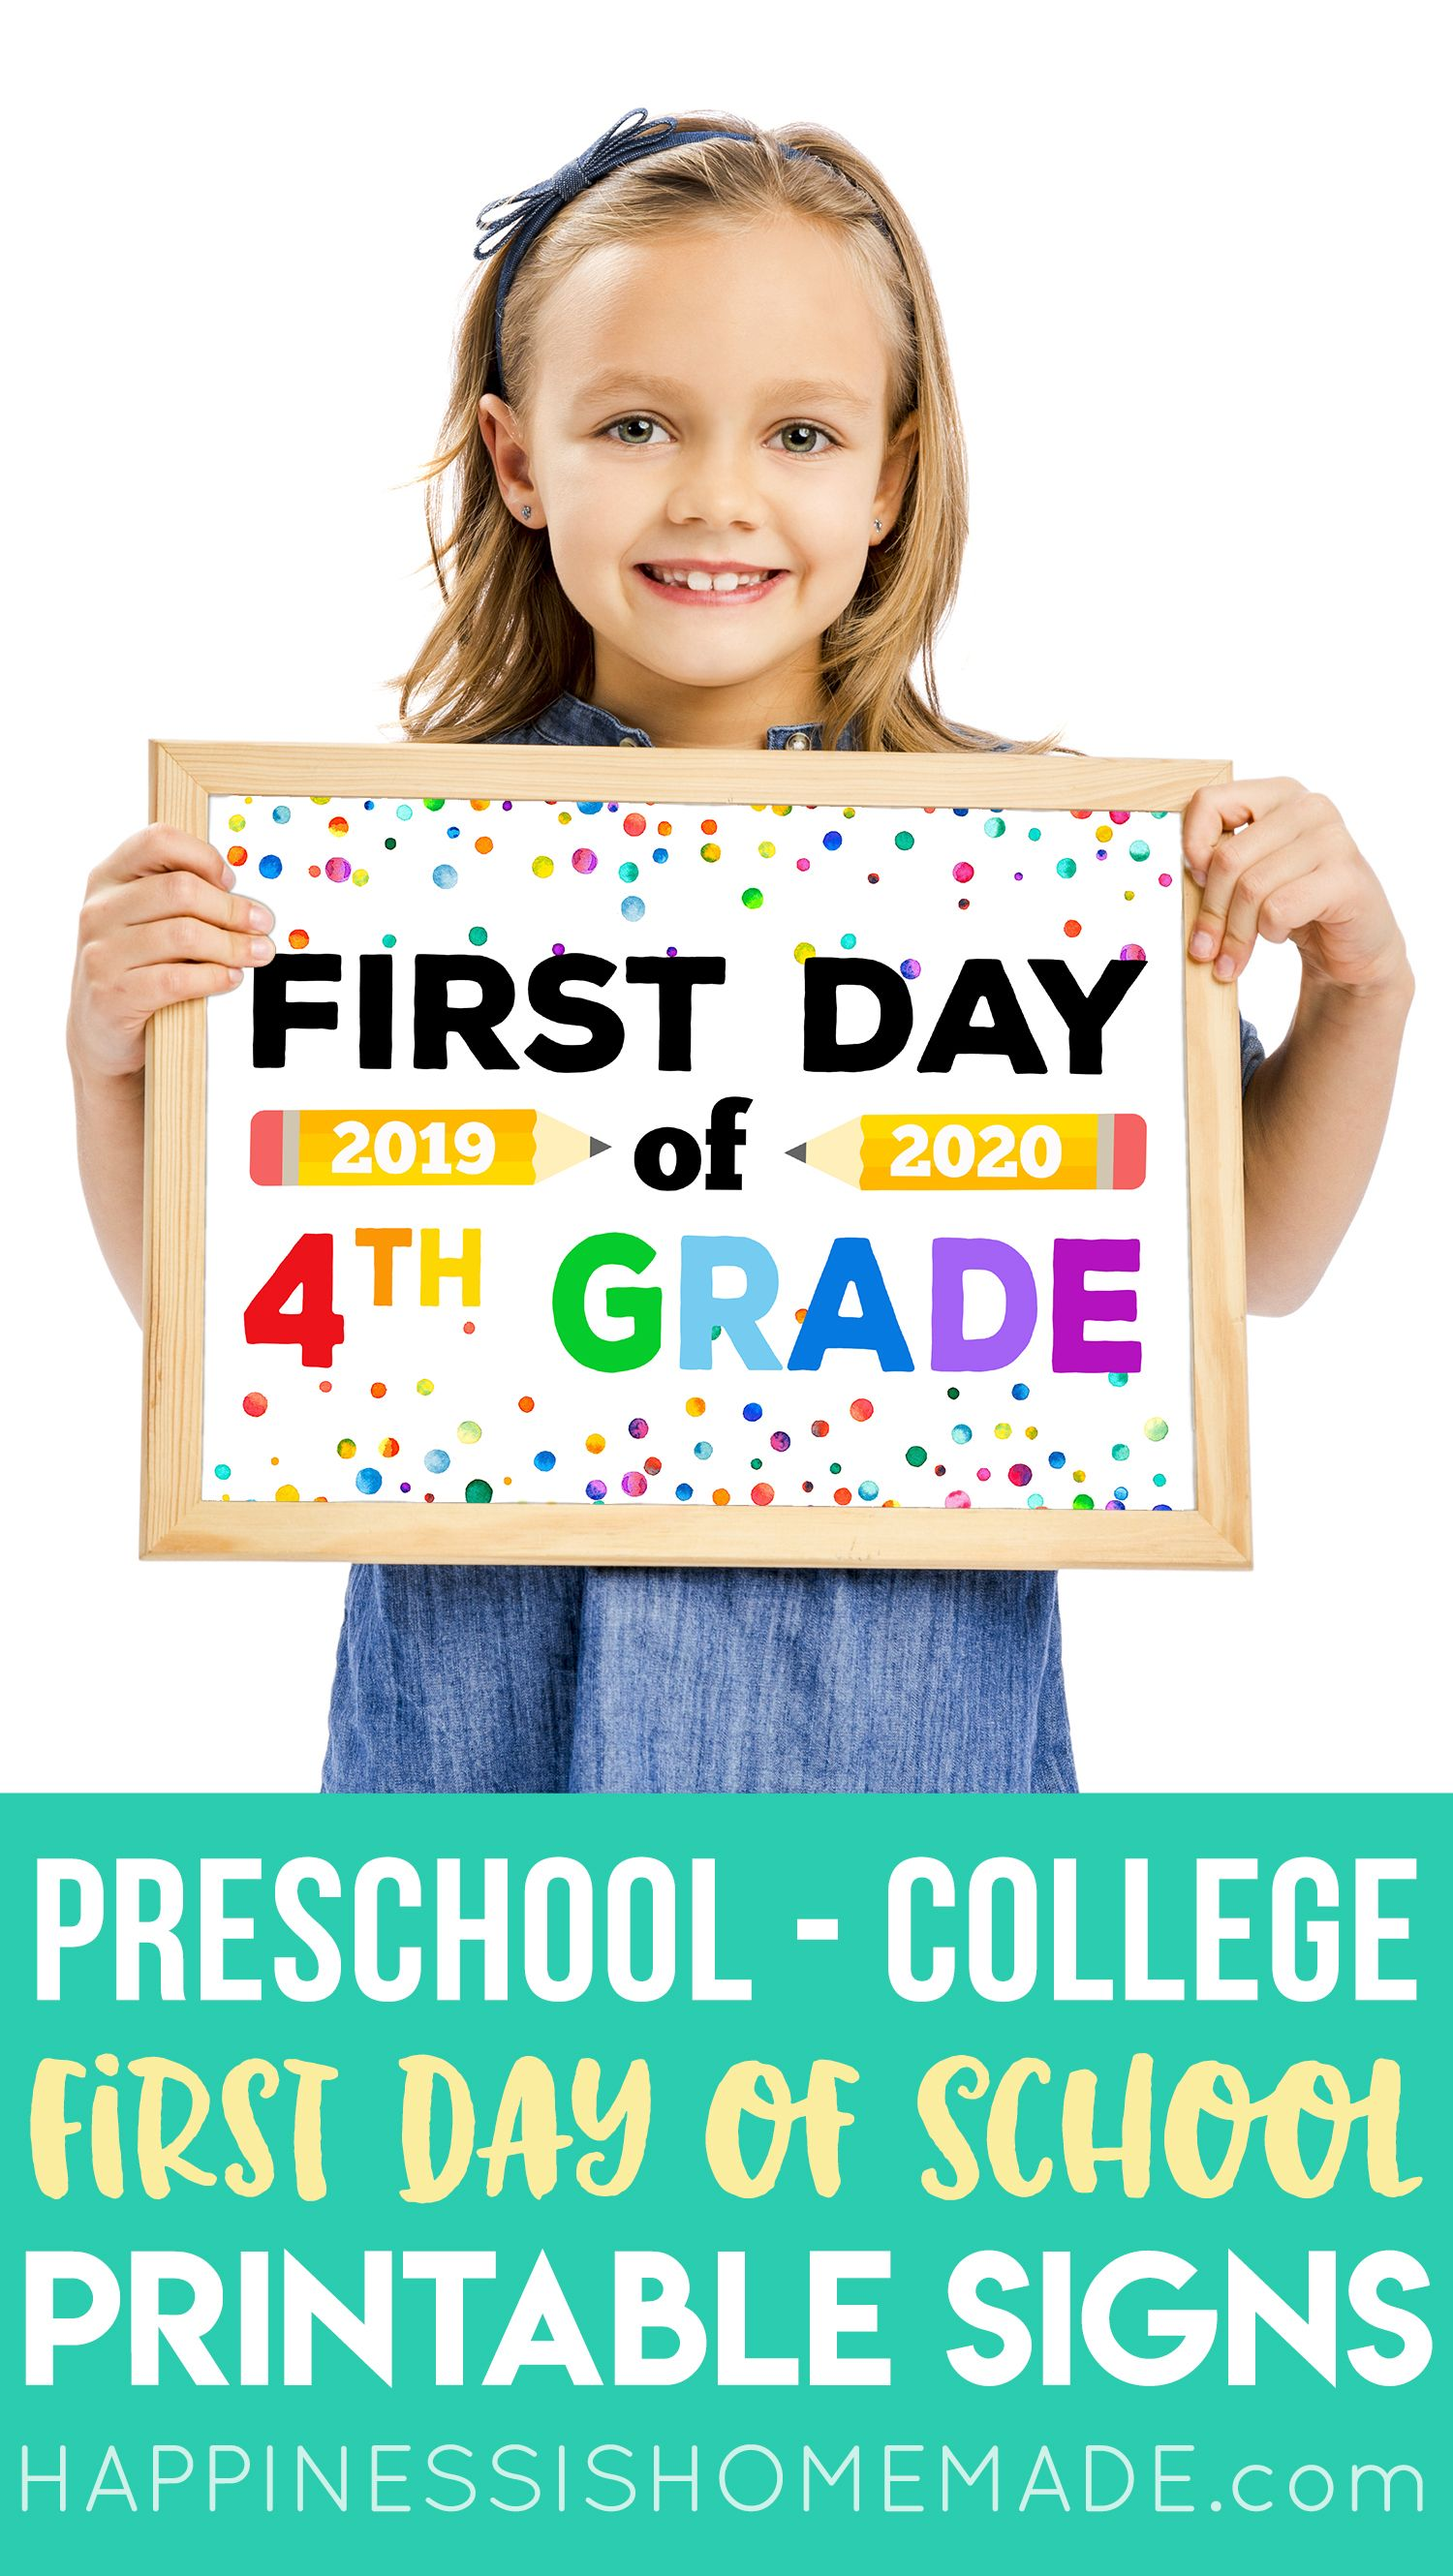 Free Printable First Day of School Signs for all grades - preschool through college! #BackToSchool #firstdayofschoolsign